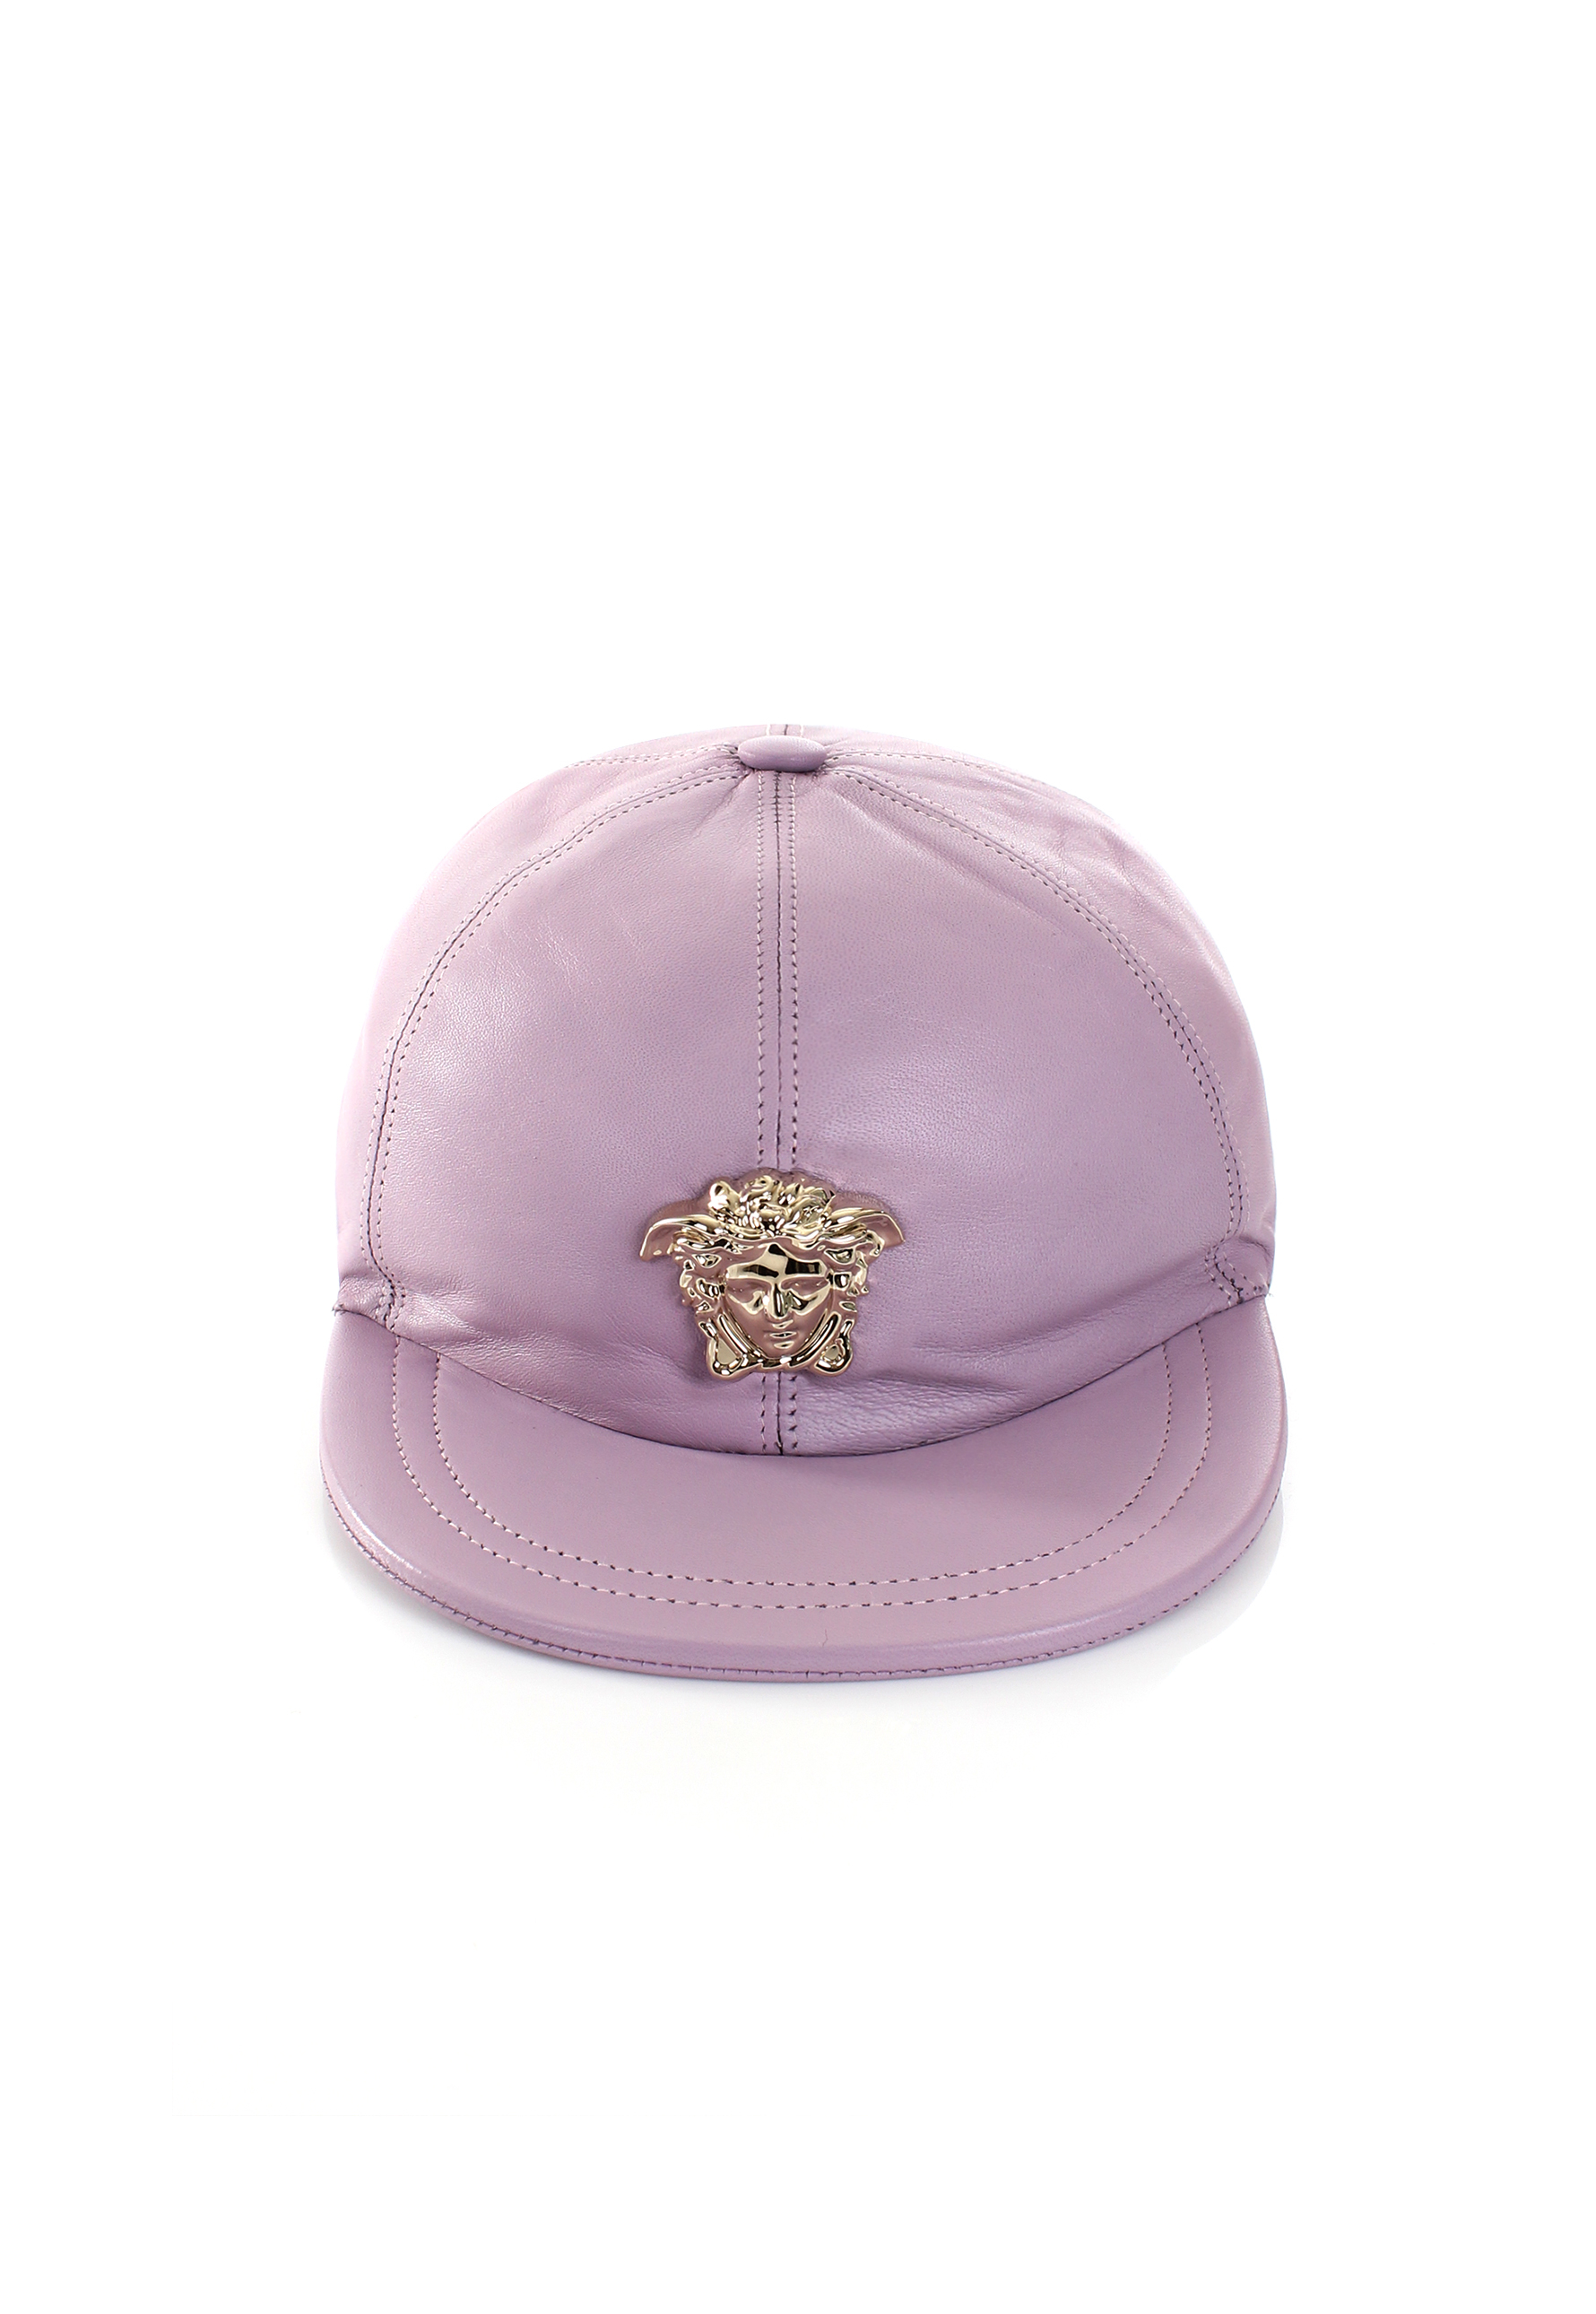 1feb91d76c5 Lyst - Versace Gold Medusa Leather Cap Pink in Pink